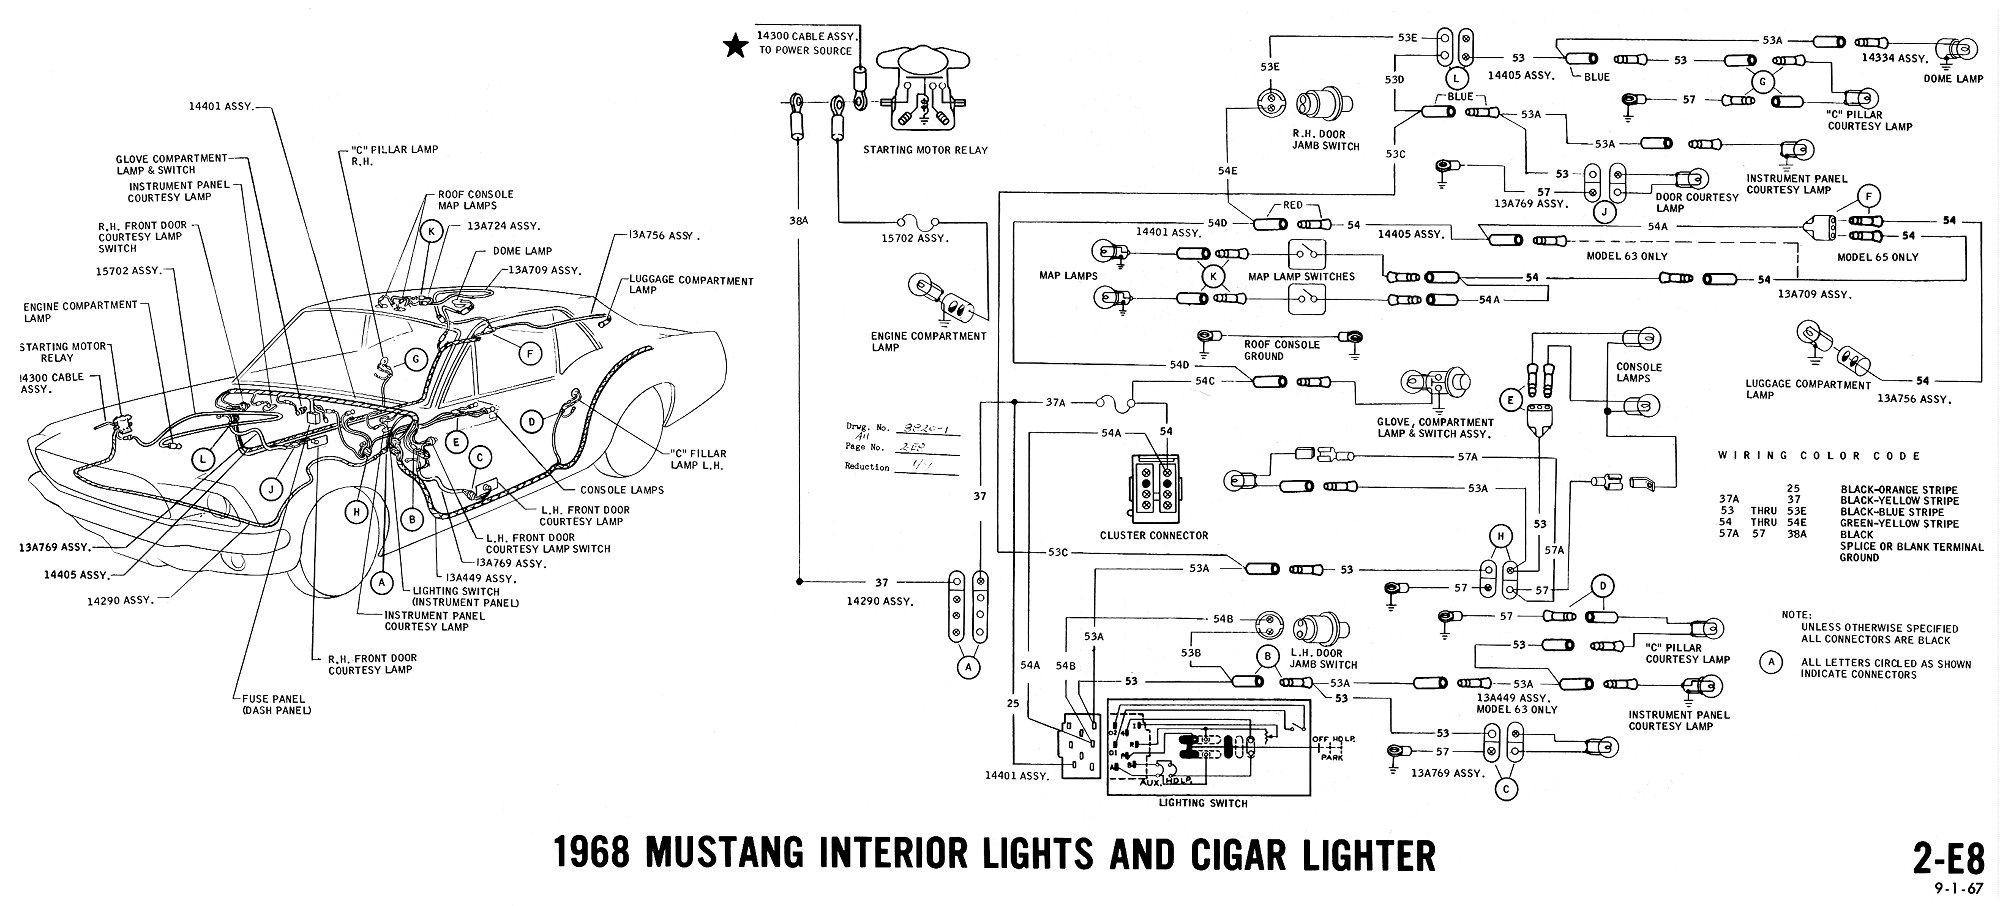 1968 Mustang Wiring Diagrams Evolving Software Simple Engine Diagram Cigar Lighter Interior Lights